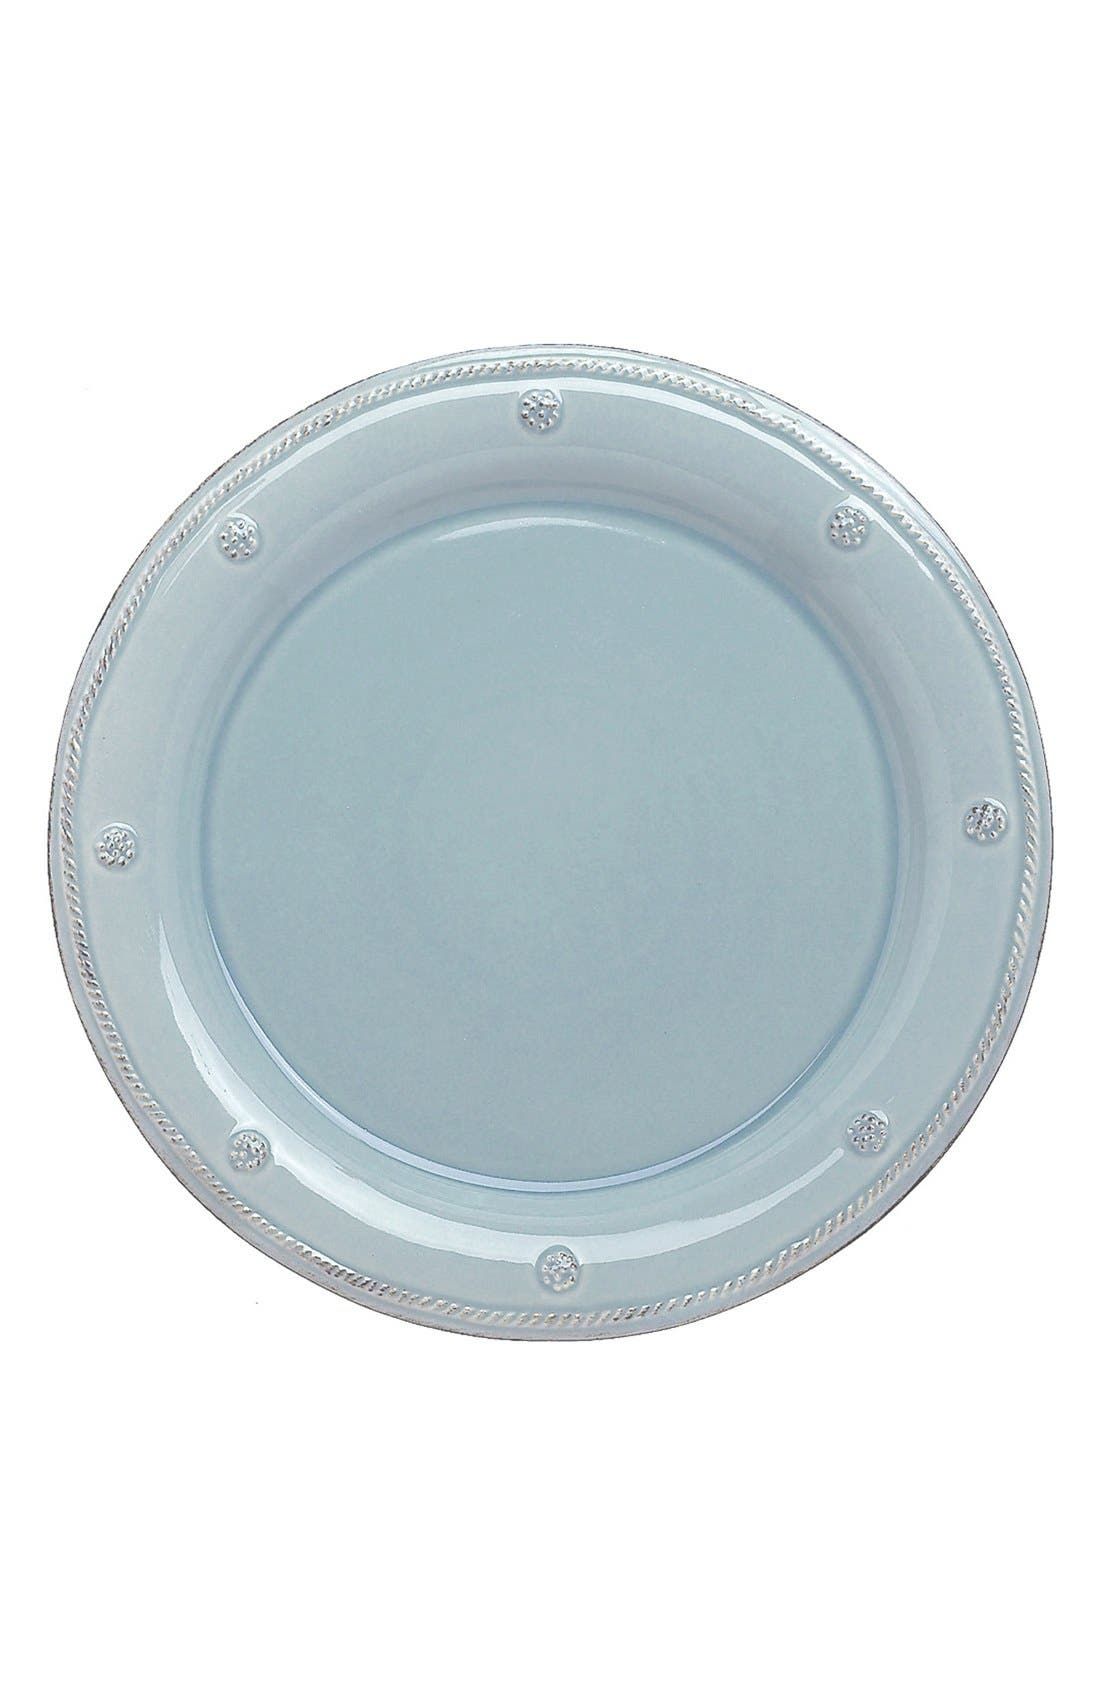 'Berry and Thread' Dinner Plate,                             Main thumbnail 1, color,                             Ice Blue